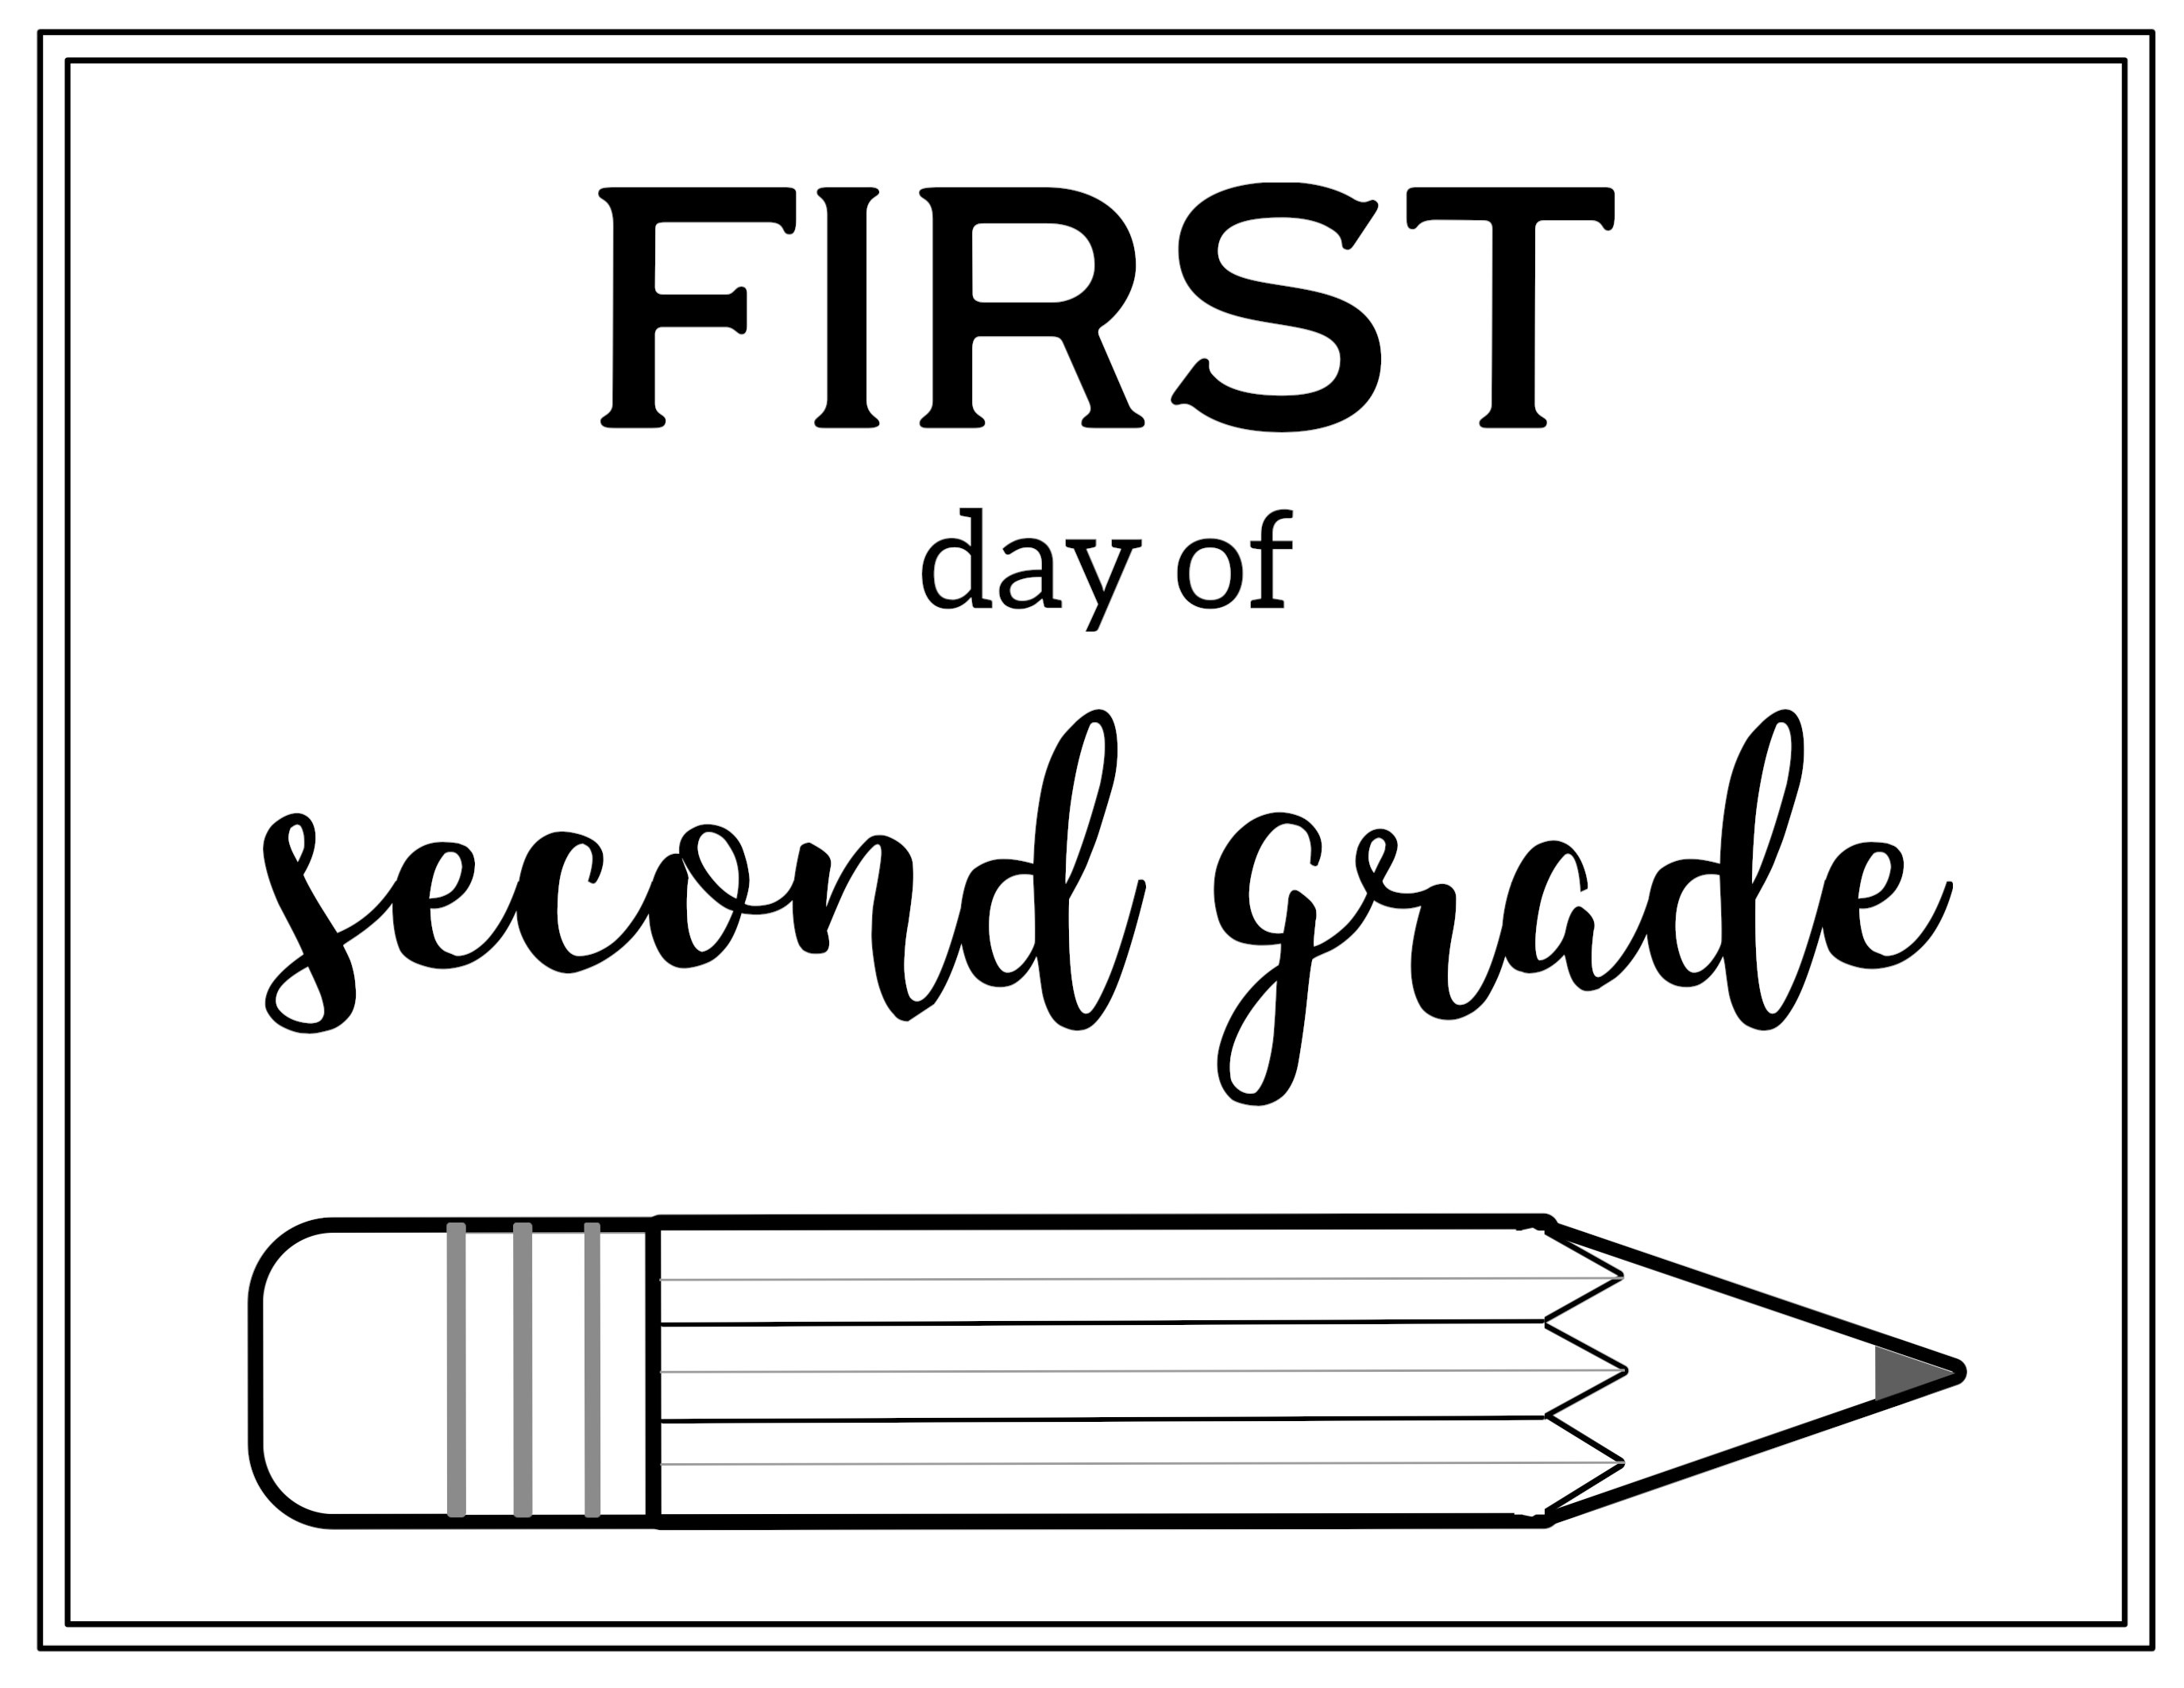 Free Printable First Day Of School Sign {Pencil} - Paper Trail Design - First Day Of Second Grade Free Printable Sign